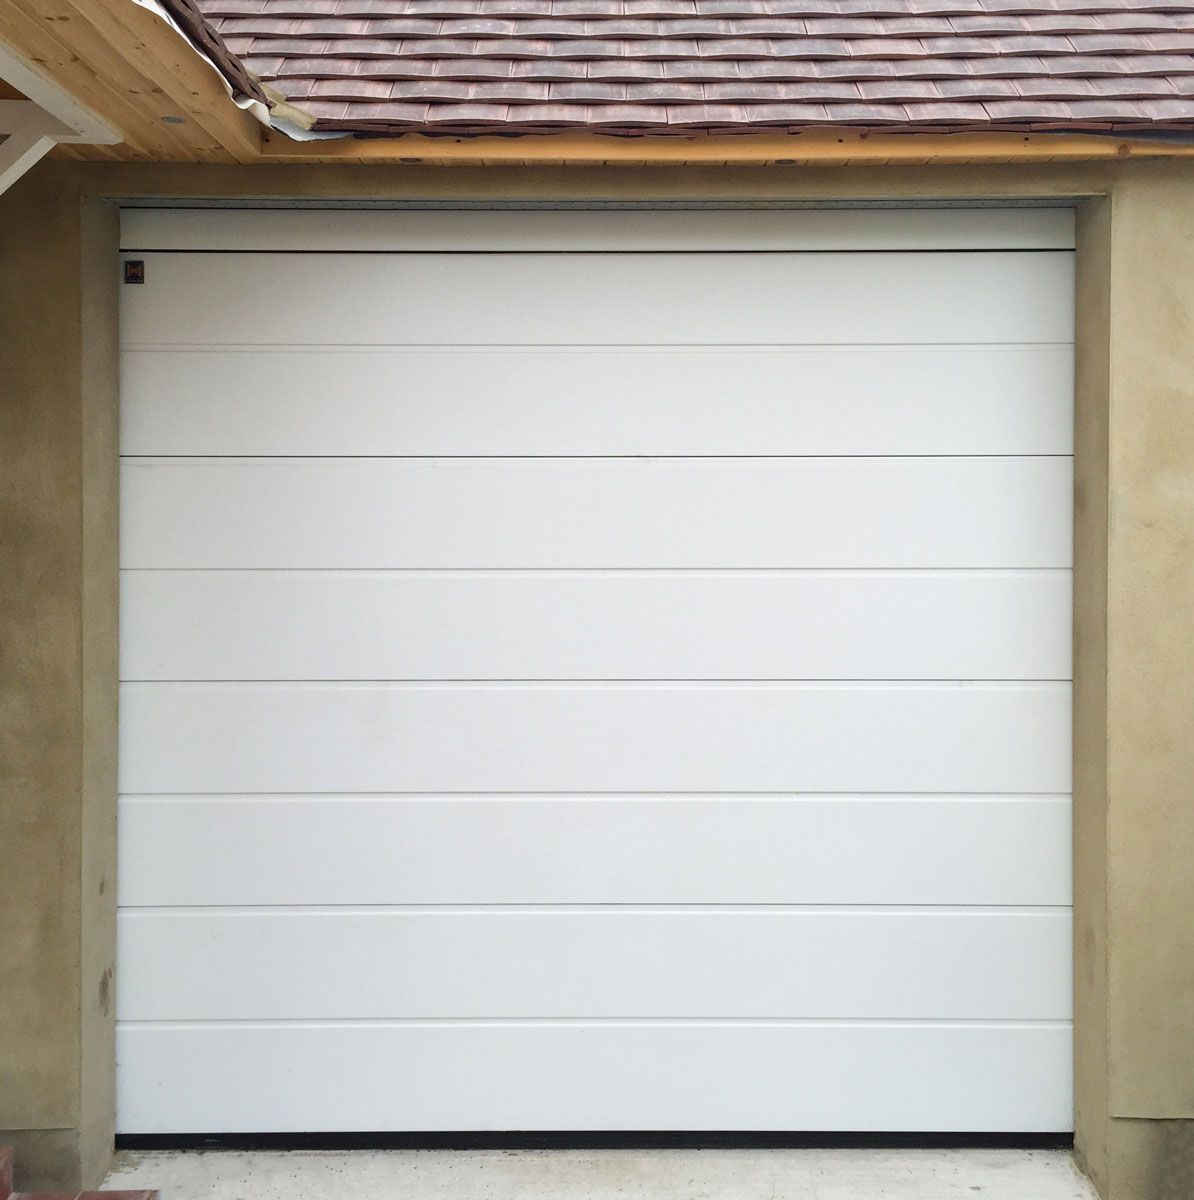 Access Garage Doors Garage Door Repairs Installation Automation Throughout London And South East Garage Doors Side Hinged Garage Doors Garage Door Types